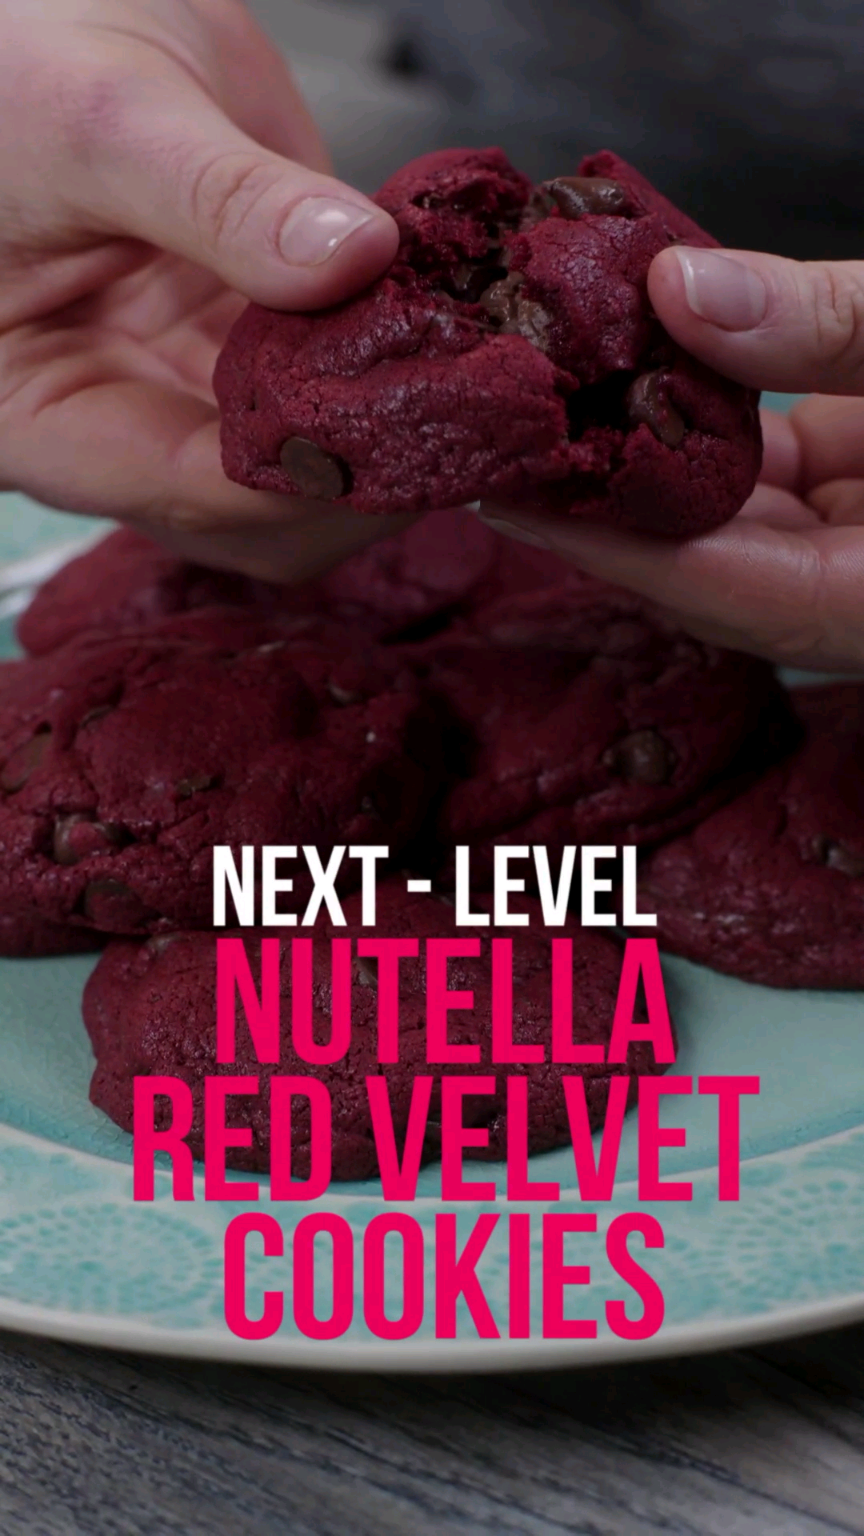 Nutella-Stuffed Red Velvet Cookies #cookies